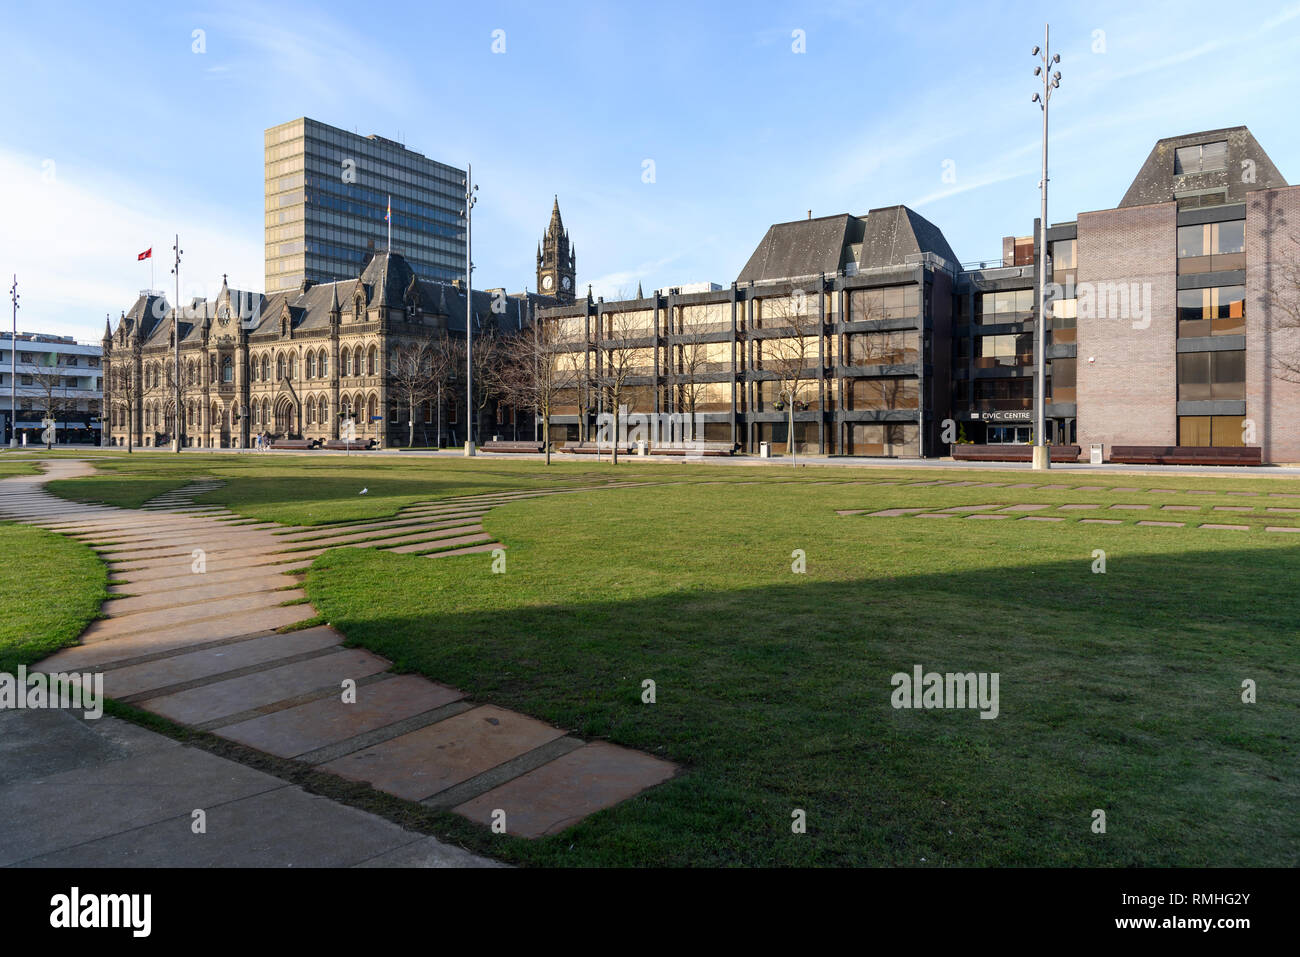 Town Hall and Civic Centre in Central Square Middlesbrough with decorative steel plate pathways set into the grass. - Stock Image